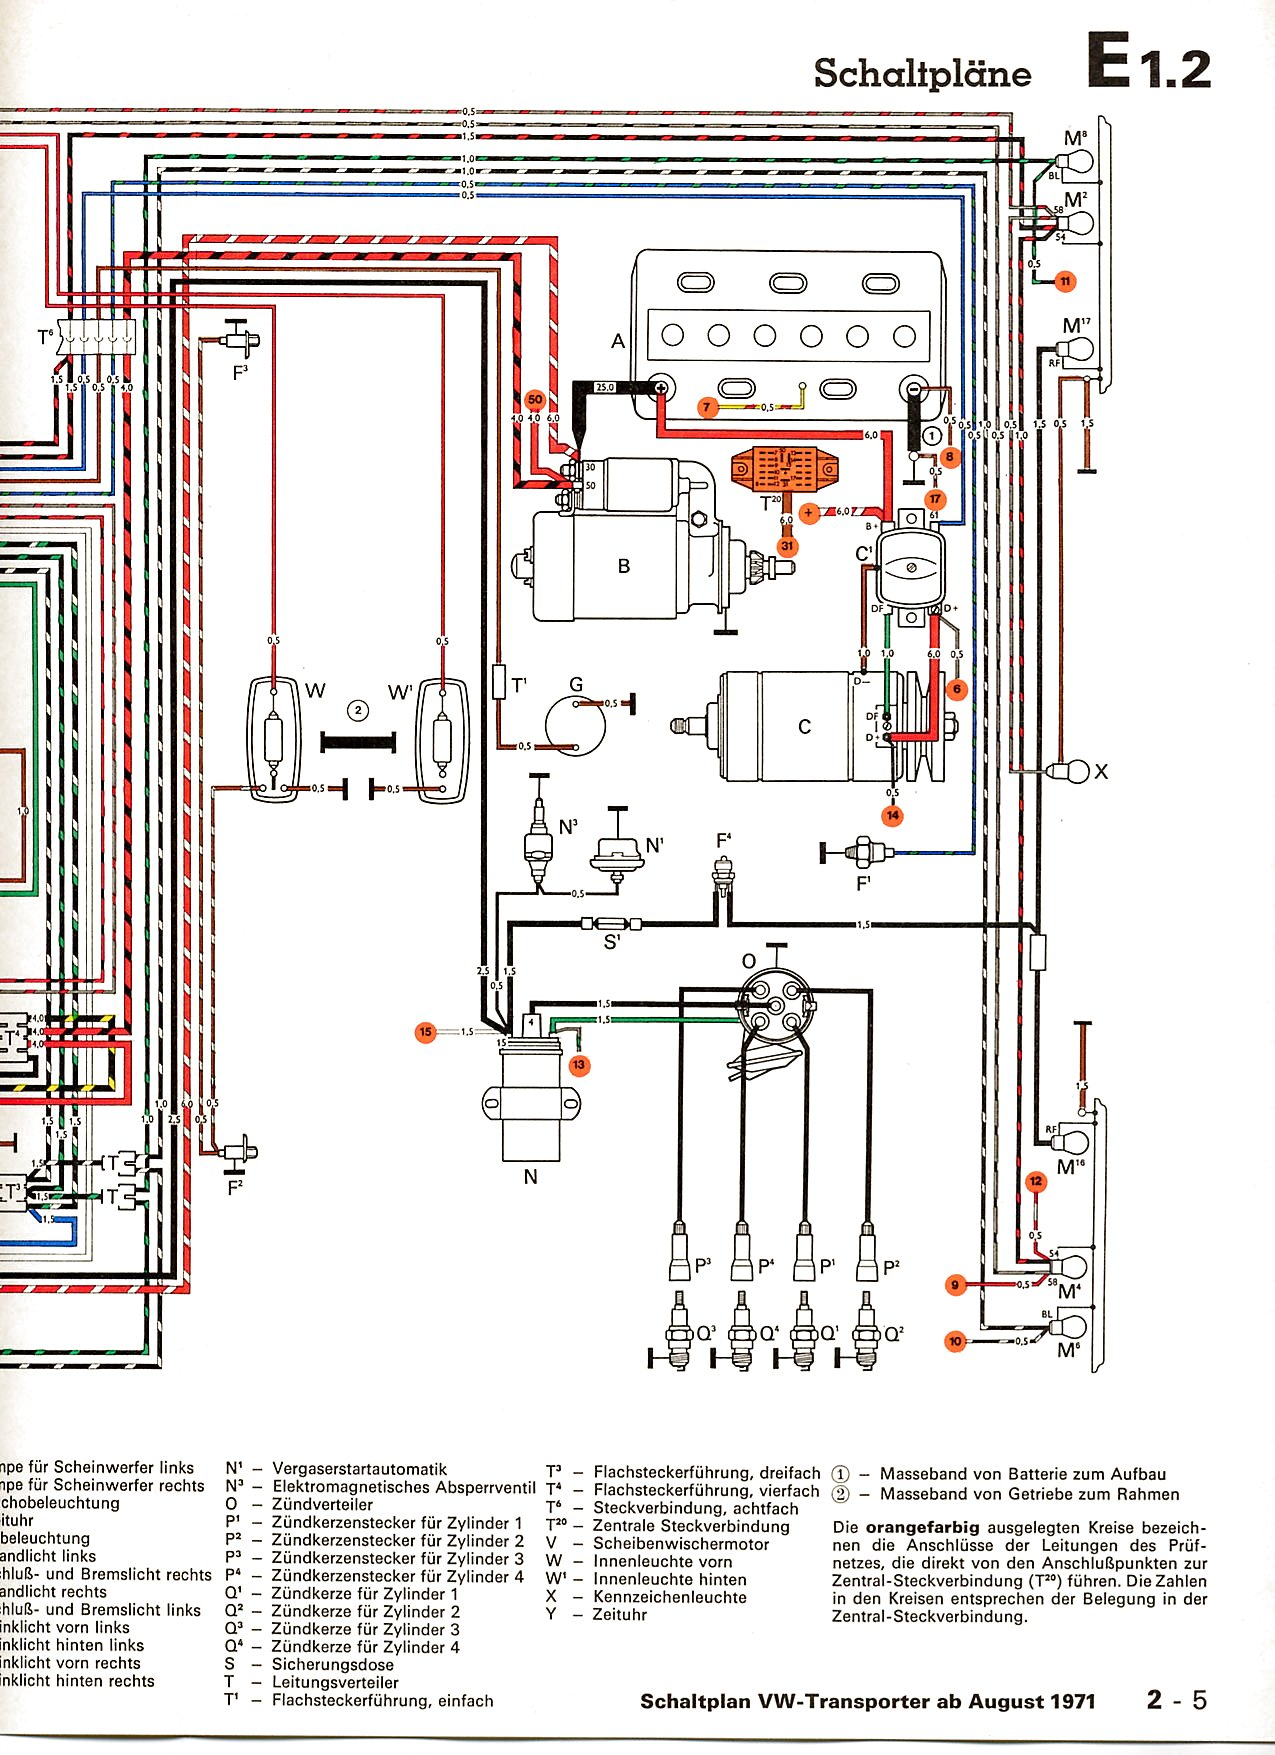 Volkswagen Wiring Diagram - Wiring Diagram Dash on vw bus wiring diagram, type 1 vw engine diagram, vw bug wiring diagram, vw gti wiring diagram, vw r32 wiring diagram, 72 vw wiring diagram, vw thing wiring diagram, vw 1600 engine diagram, jaguar e type wiring diagram, vw engine wiring diagram, vw type 2 wiring diagram, air cooled vw wiring diagram, 1965 vw wiring diagram, vw type 4 wiring diagram, vw jetta wiring diagram, vw alternator conversion wiring diagram, vw ignition wiring diagram, 1973 vw wiring diagram, 1974 vw engine diagram, 68 vw wiring diagram,